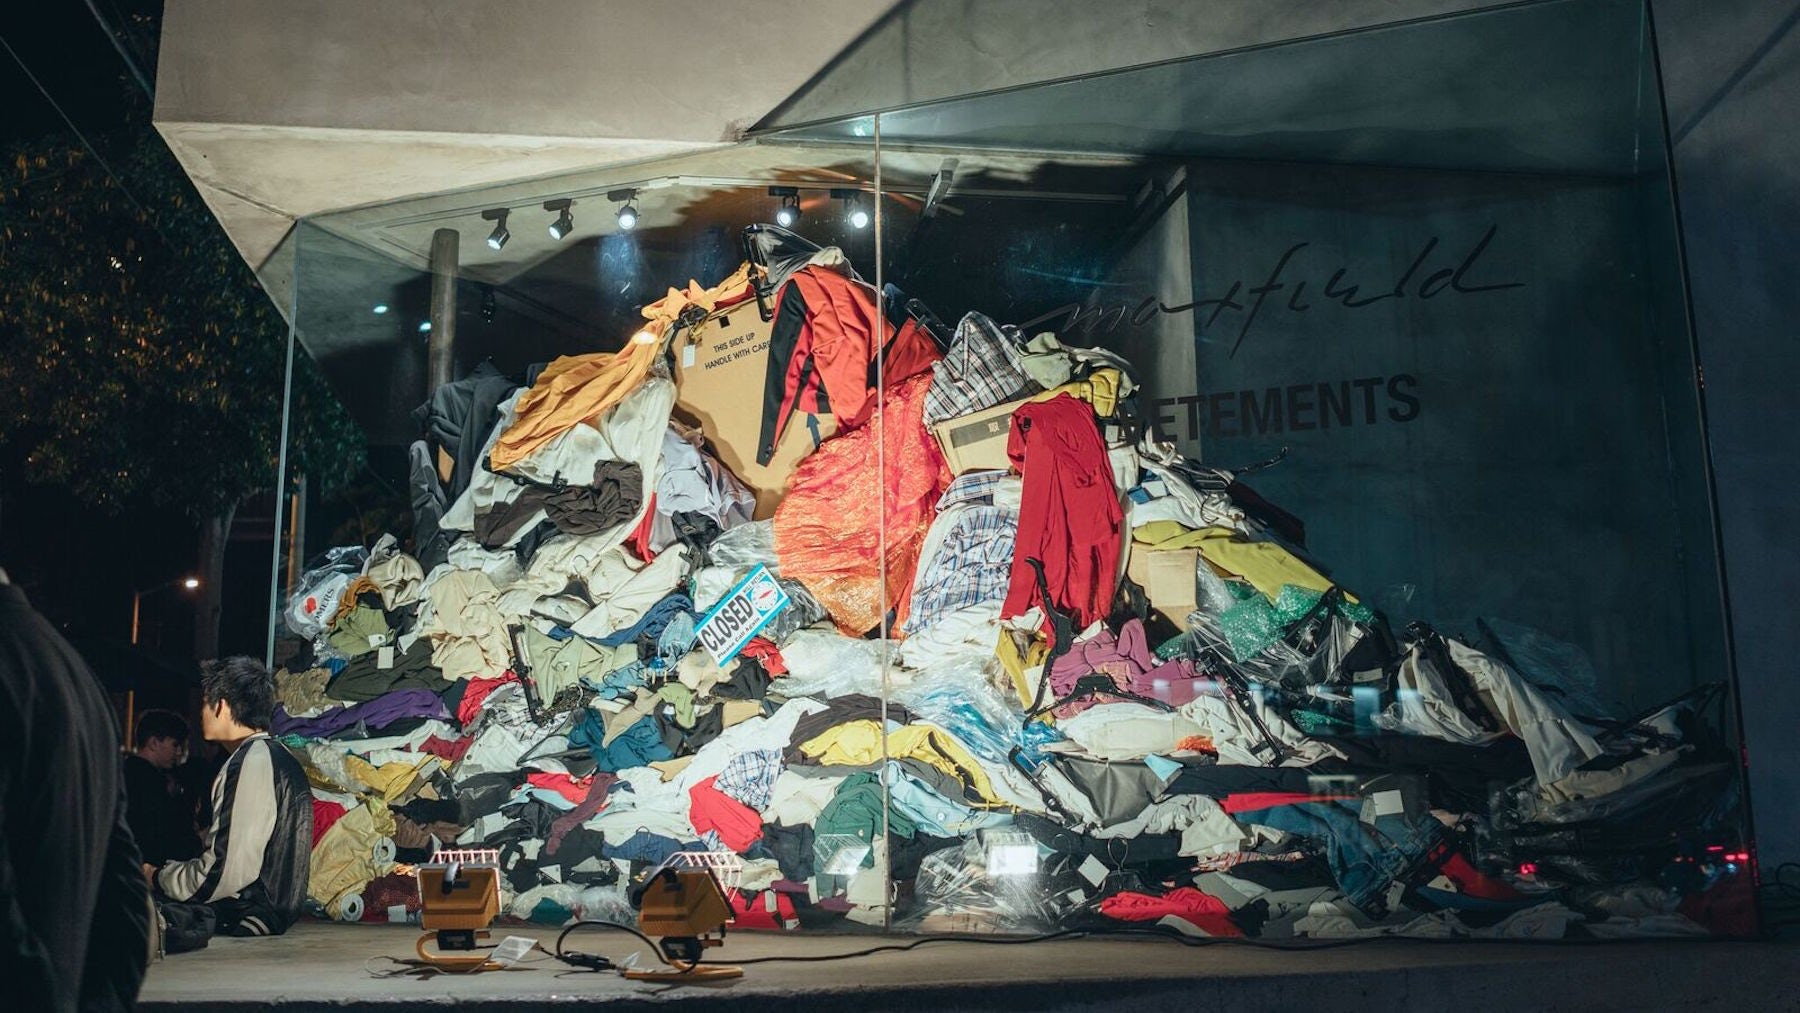 Vetements 'Dry Cleaning' event at Maxfield   Source: Courtesy